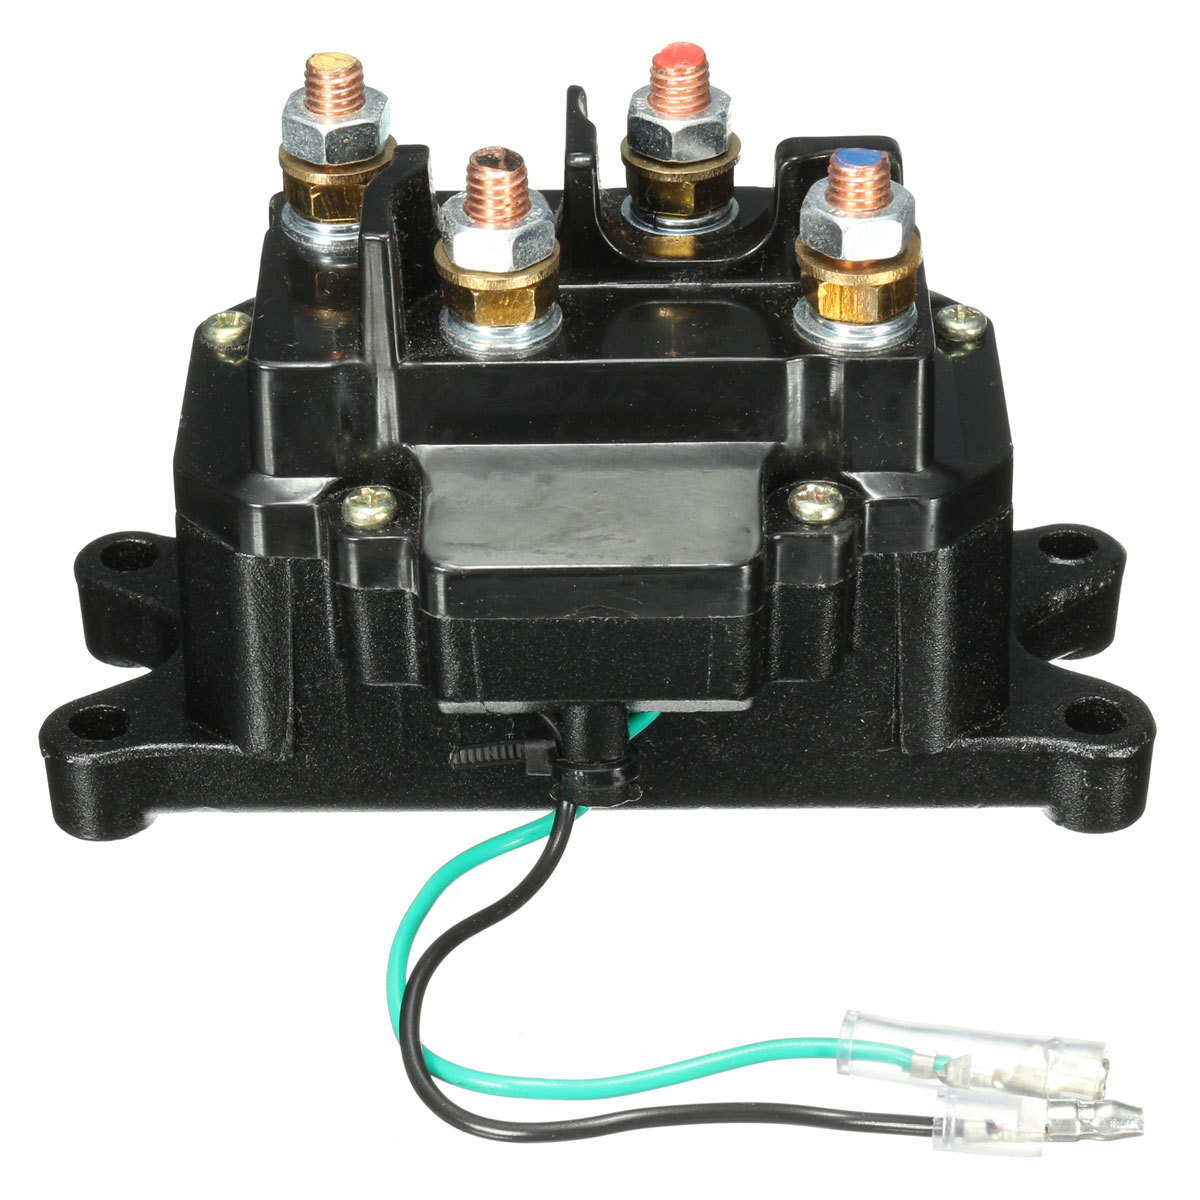 103342 Make Marine Efi Code Tool Less Than  1 00 A in addition 597 likewise Exterior Lighting in addition 7107 Likelihood Of A CHAdeMO Adapter For The Model S moreover Cummins Marine Diesel Engine Wiring Diagrams. on 12v wiring chart